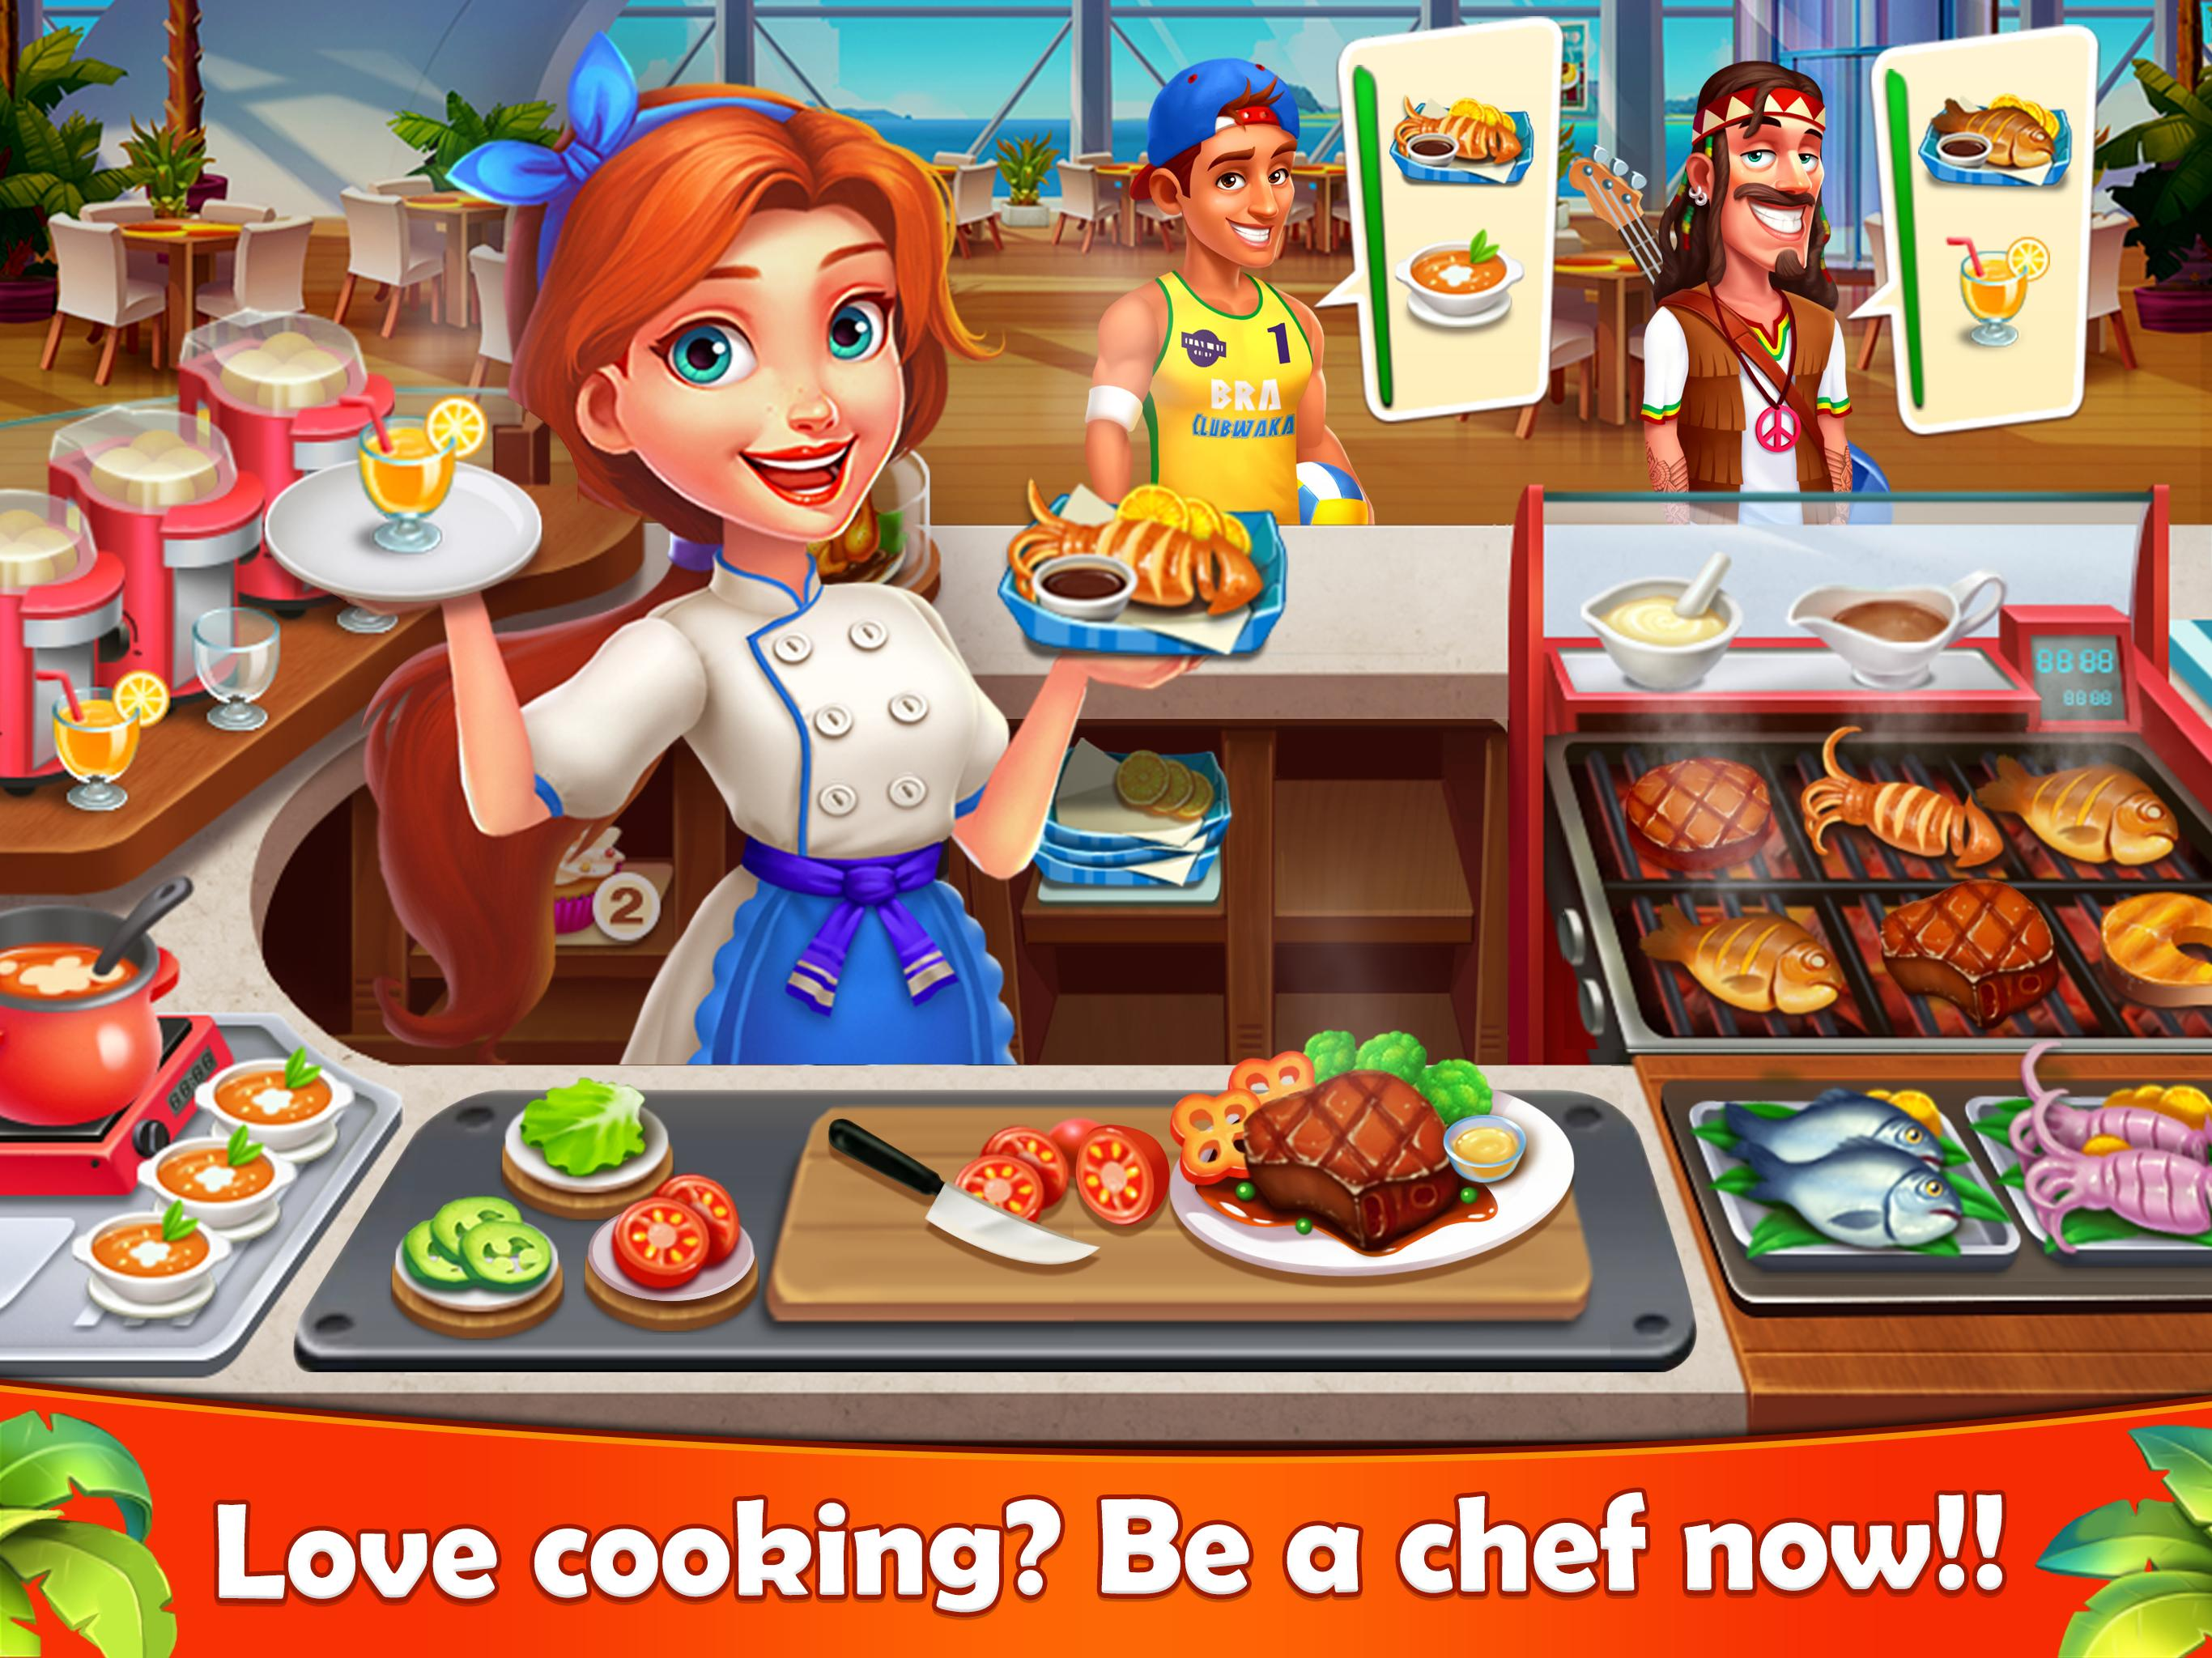 Buy Food Game Art For UI Graphic Assets | Chupamobile.com |Food Games